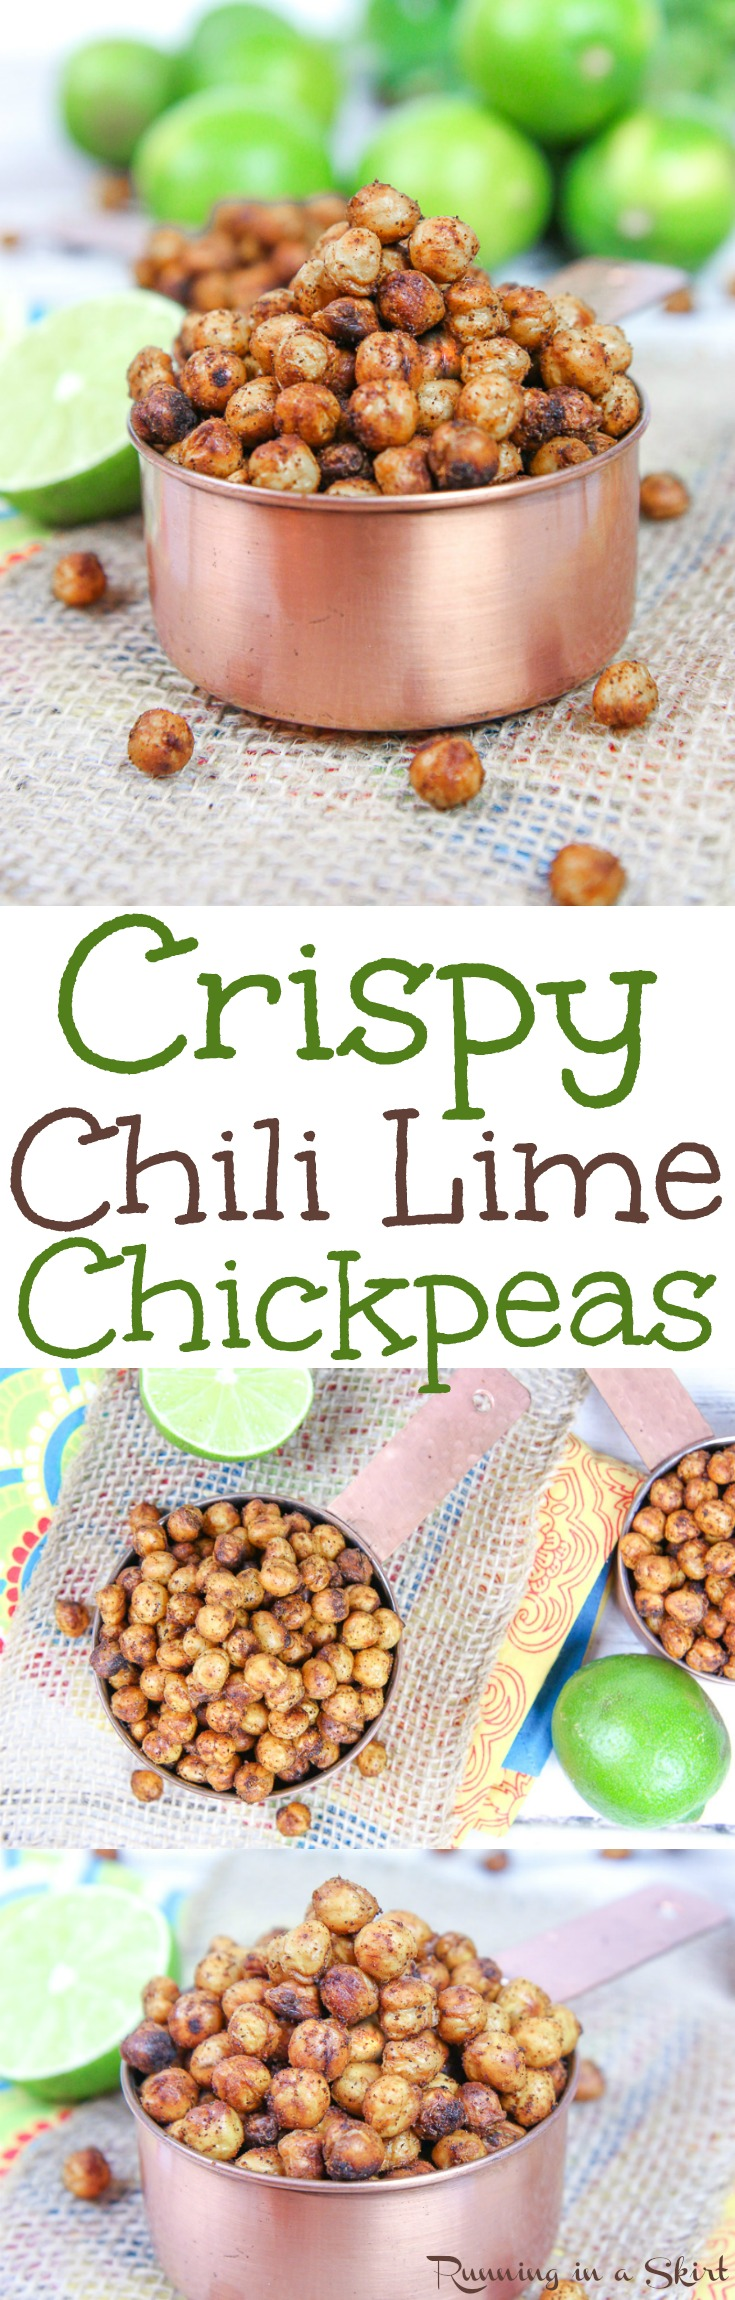 Healthy Chili Lime Crispy Chickpeas recipe - the perfect spicy snack! Oven roasted on a pan with olive oil and spices - includes a trick to actually get them crunchy! Vegan & gluten free / Running in a Skirt via @juliewunder